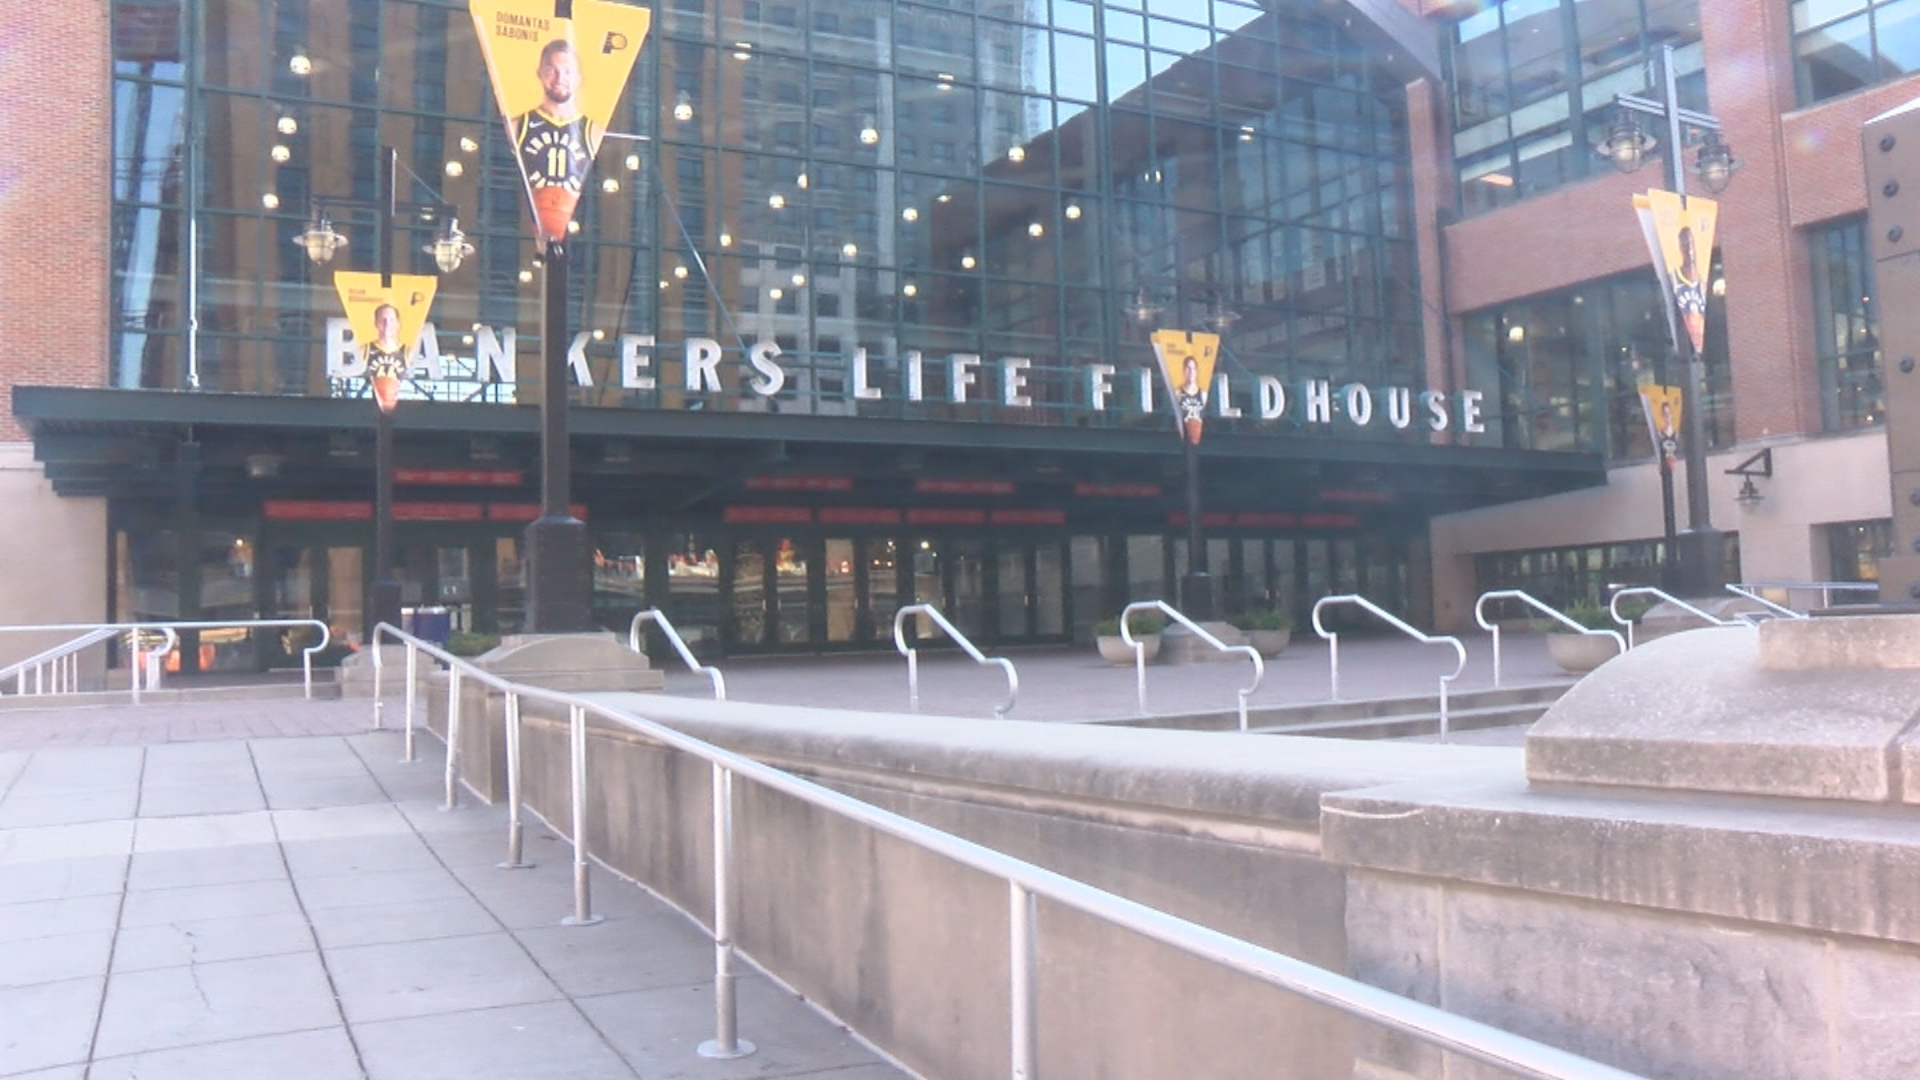 Keeping the Pacers in Indianapolis Bankers Life Fieldhouse